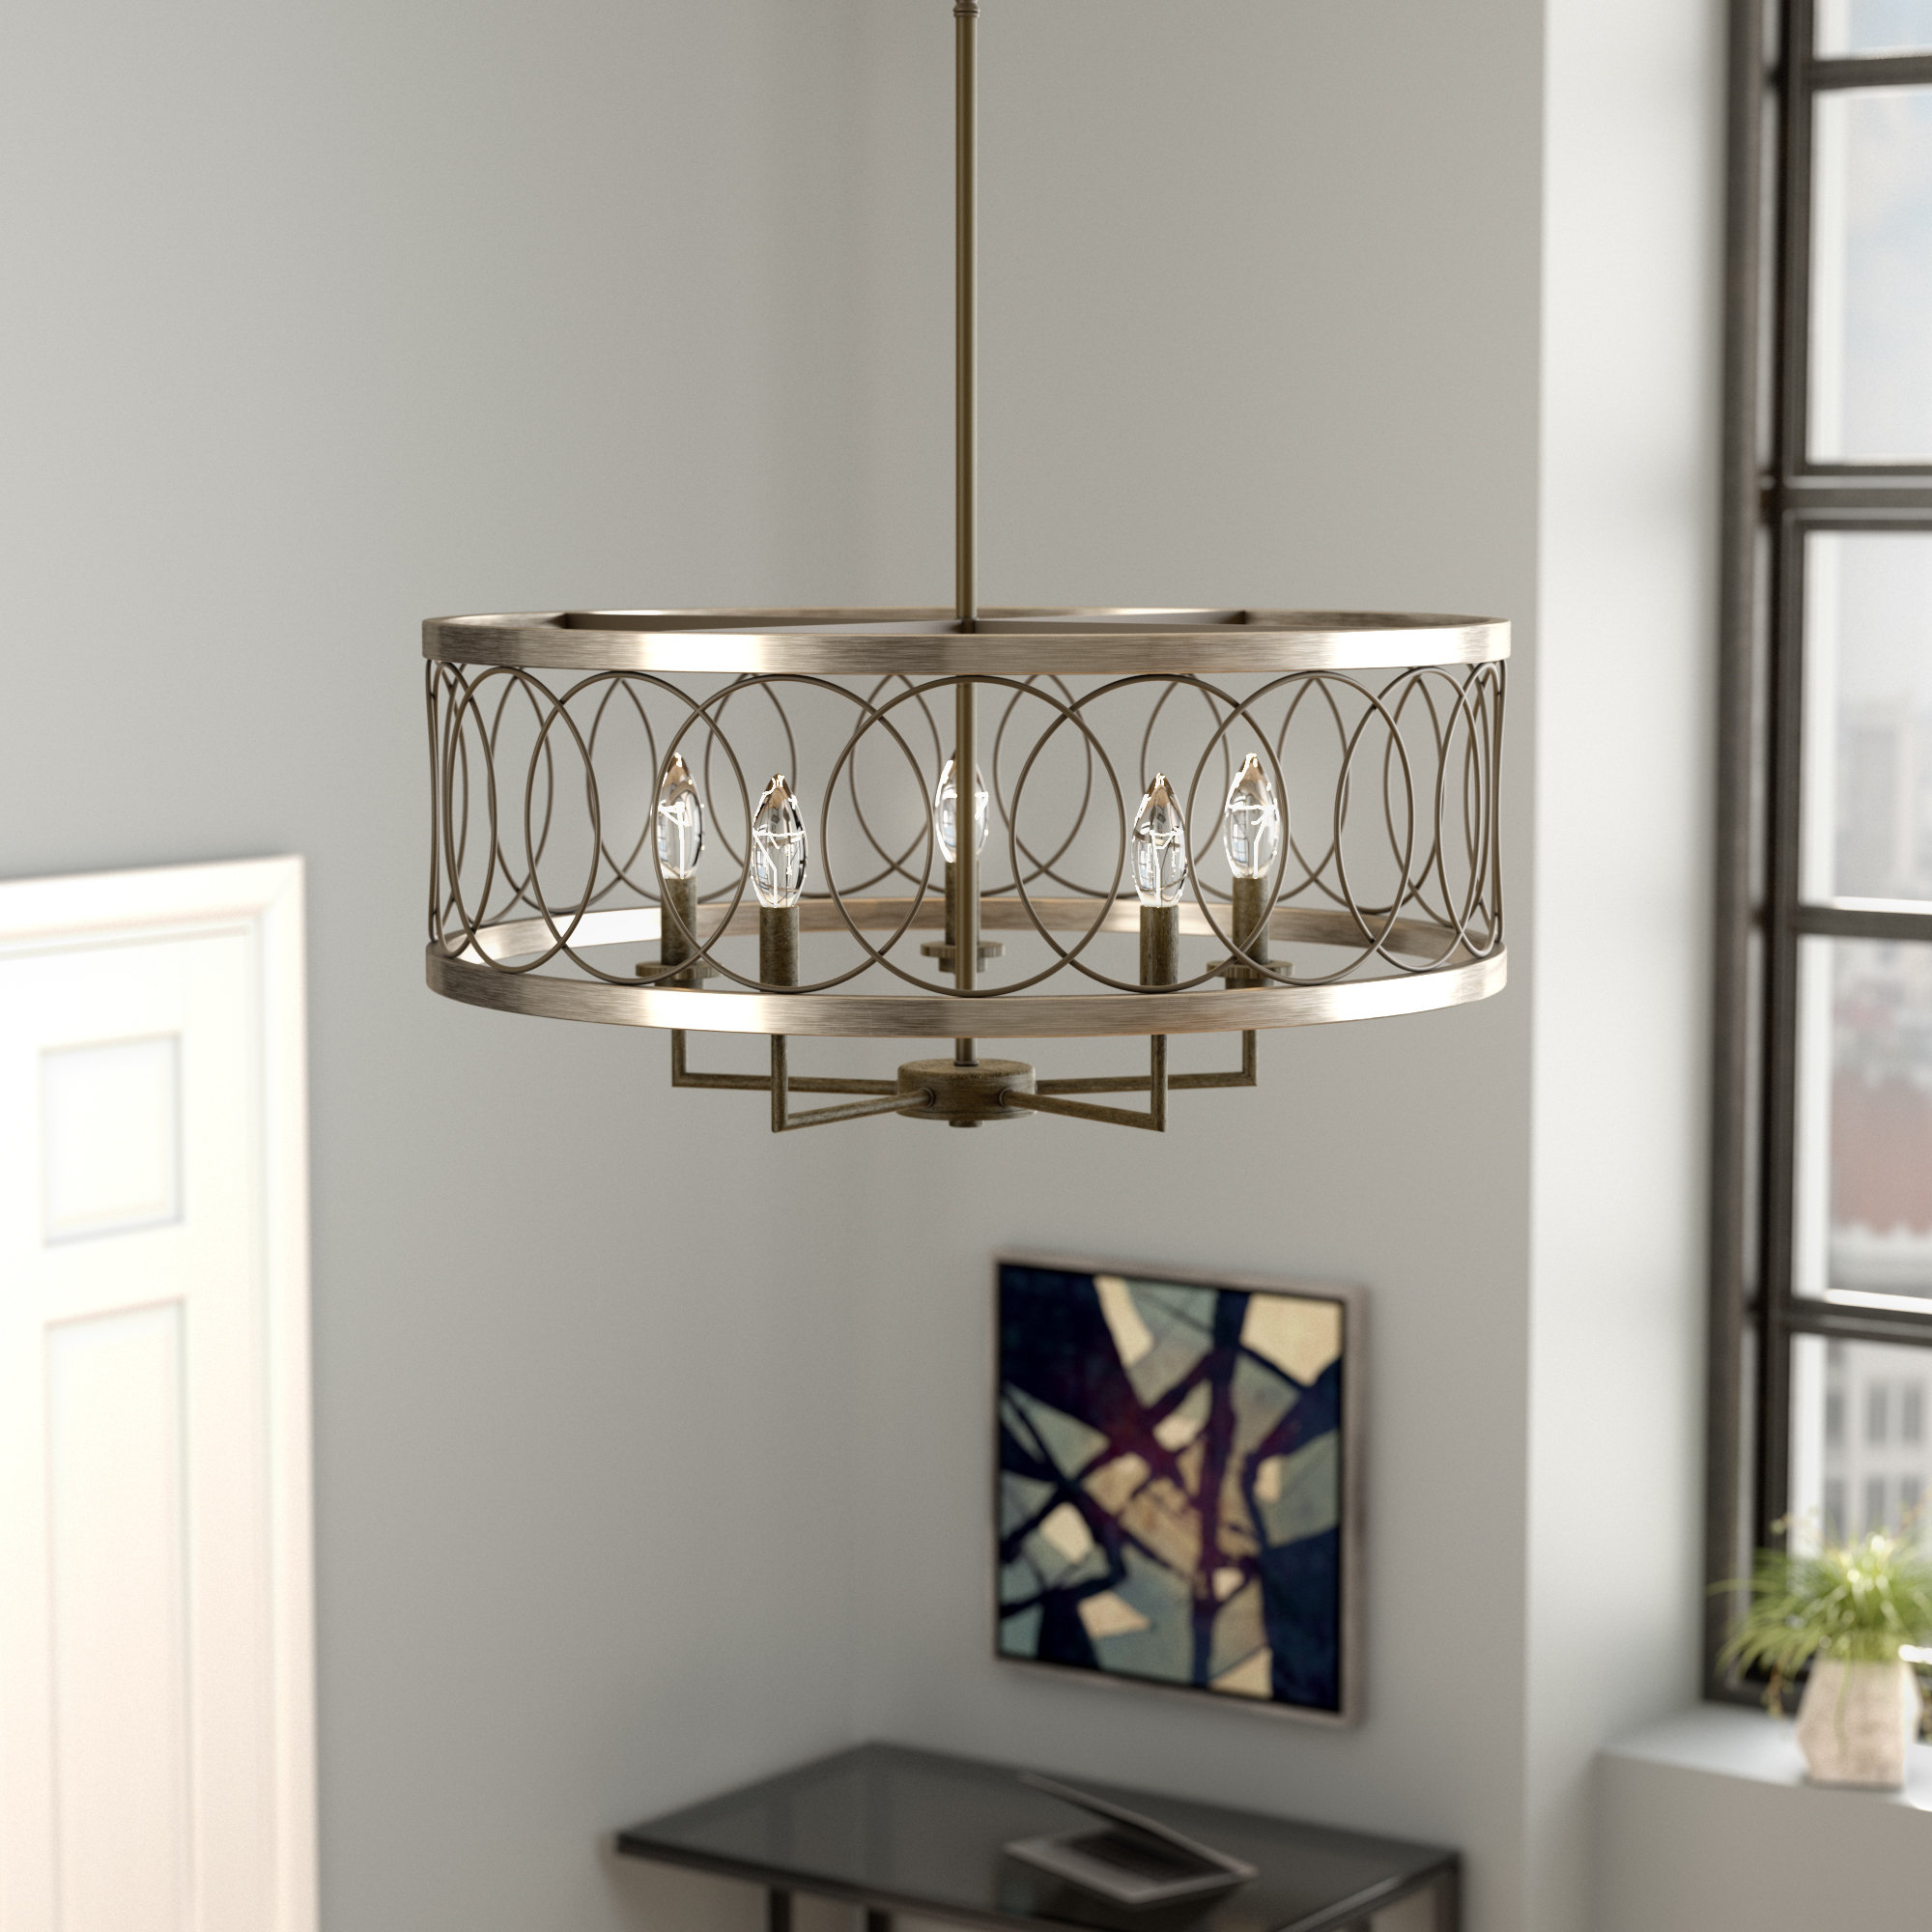 Widely Used Burton 5 Light Drum Chandeliers Throughout Cliffside 5 Light Drum Chandelier (Gallery 9 of 20)